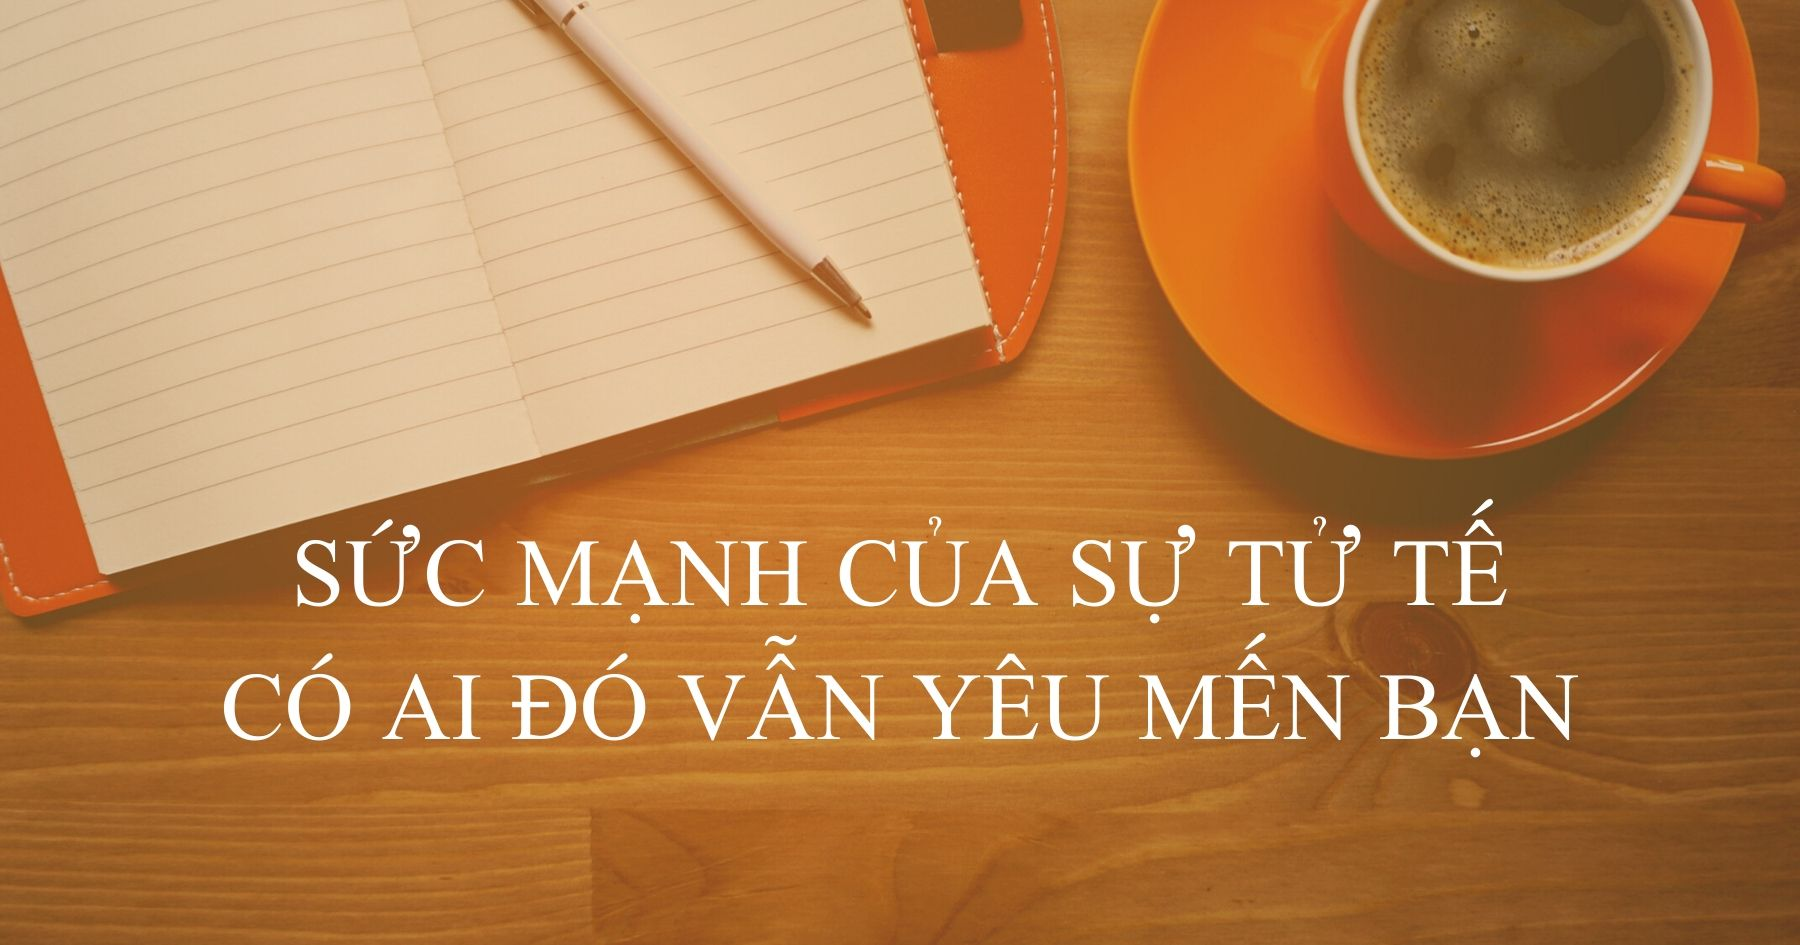 suc-manh-cua-su-tu-te-co-ai-do-van-yeu-men-ban.jpg